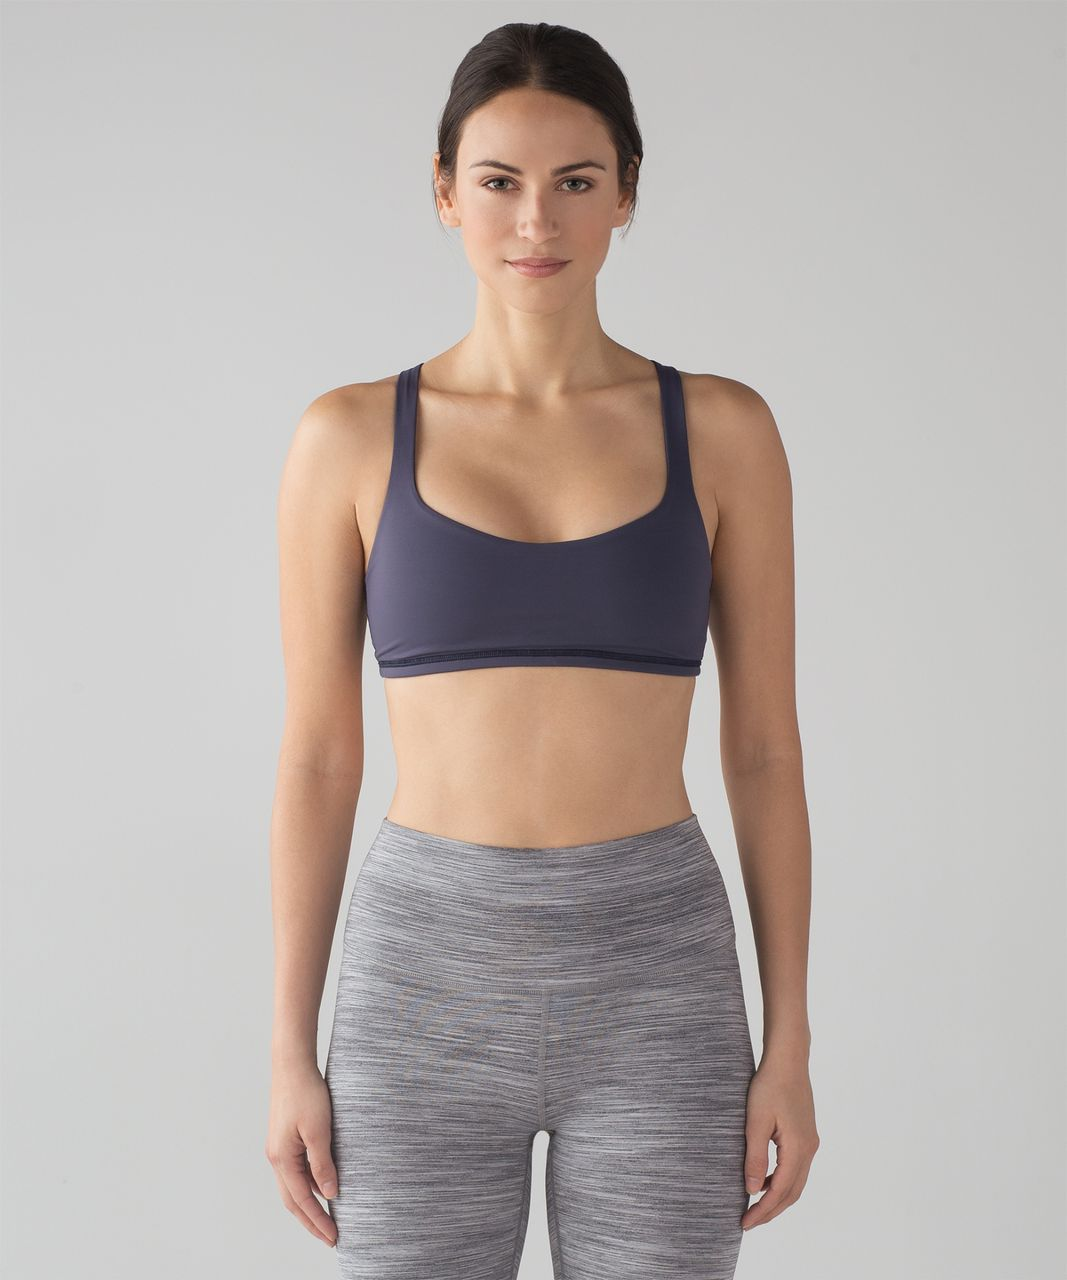 Lululemon Free To Be Bra - Cadet Blue